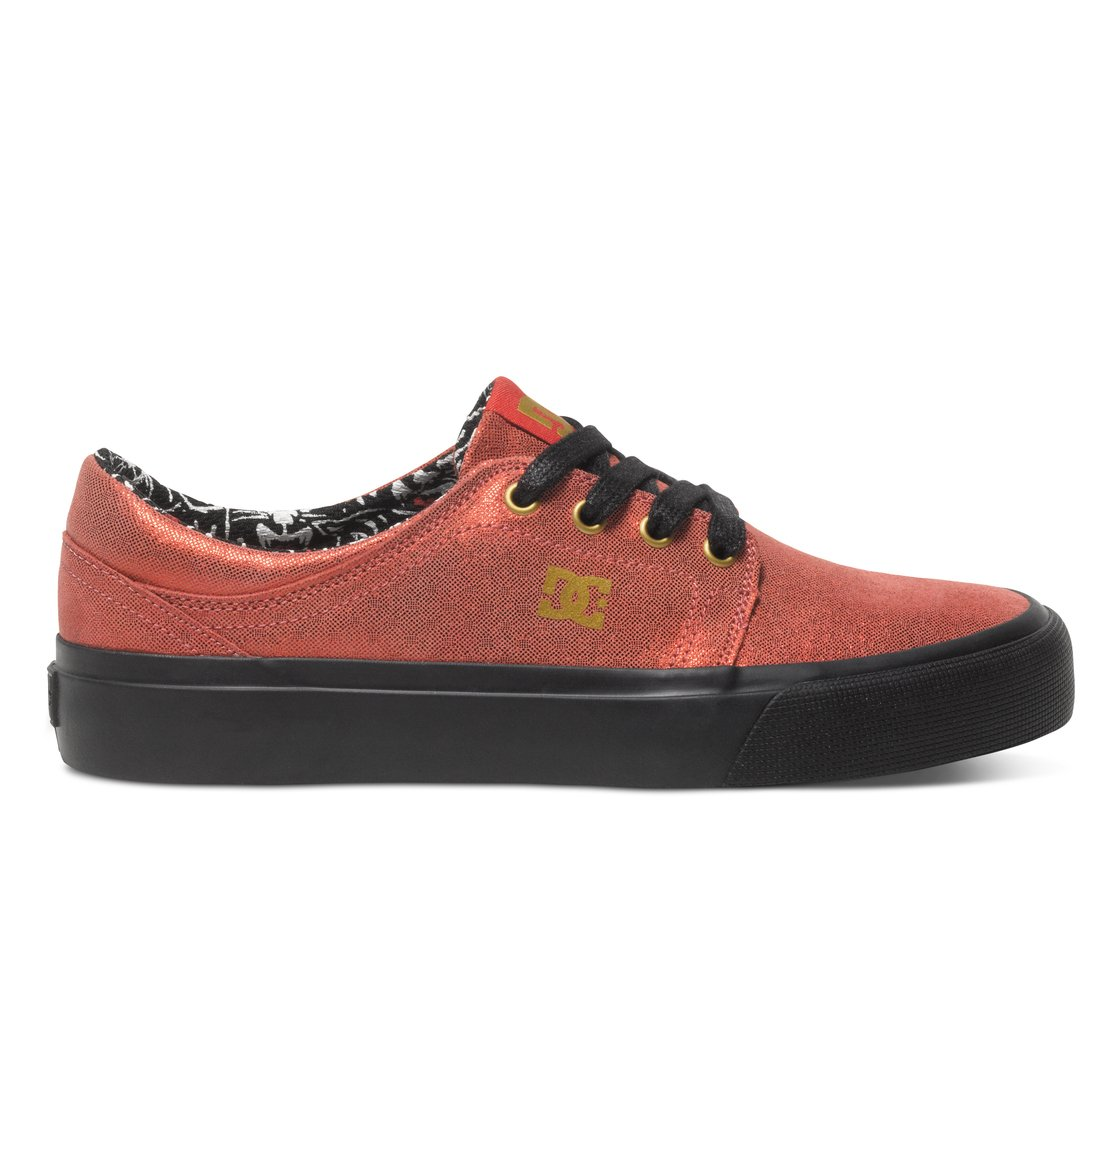 Trase X Tr Low Top Shoes Red Adjs Dc Shoes